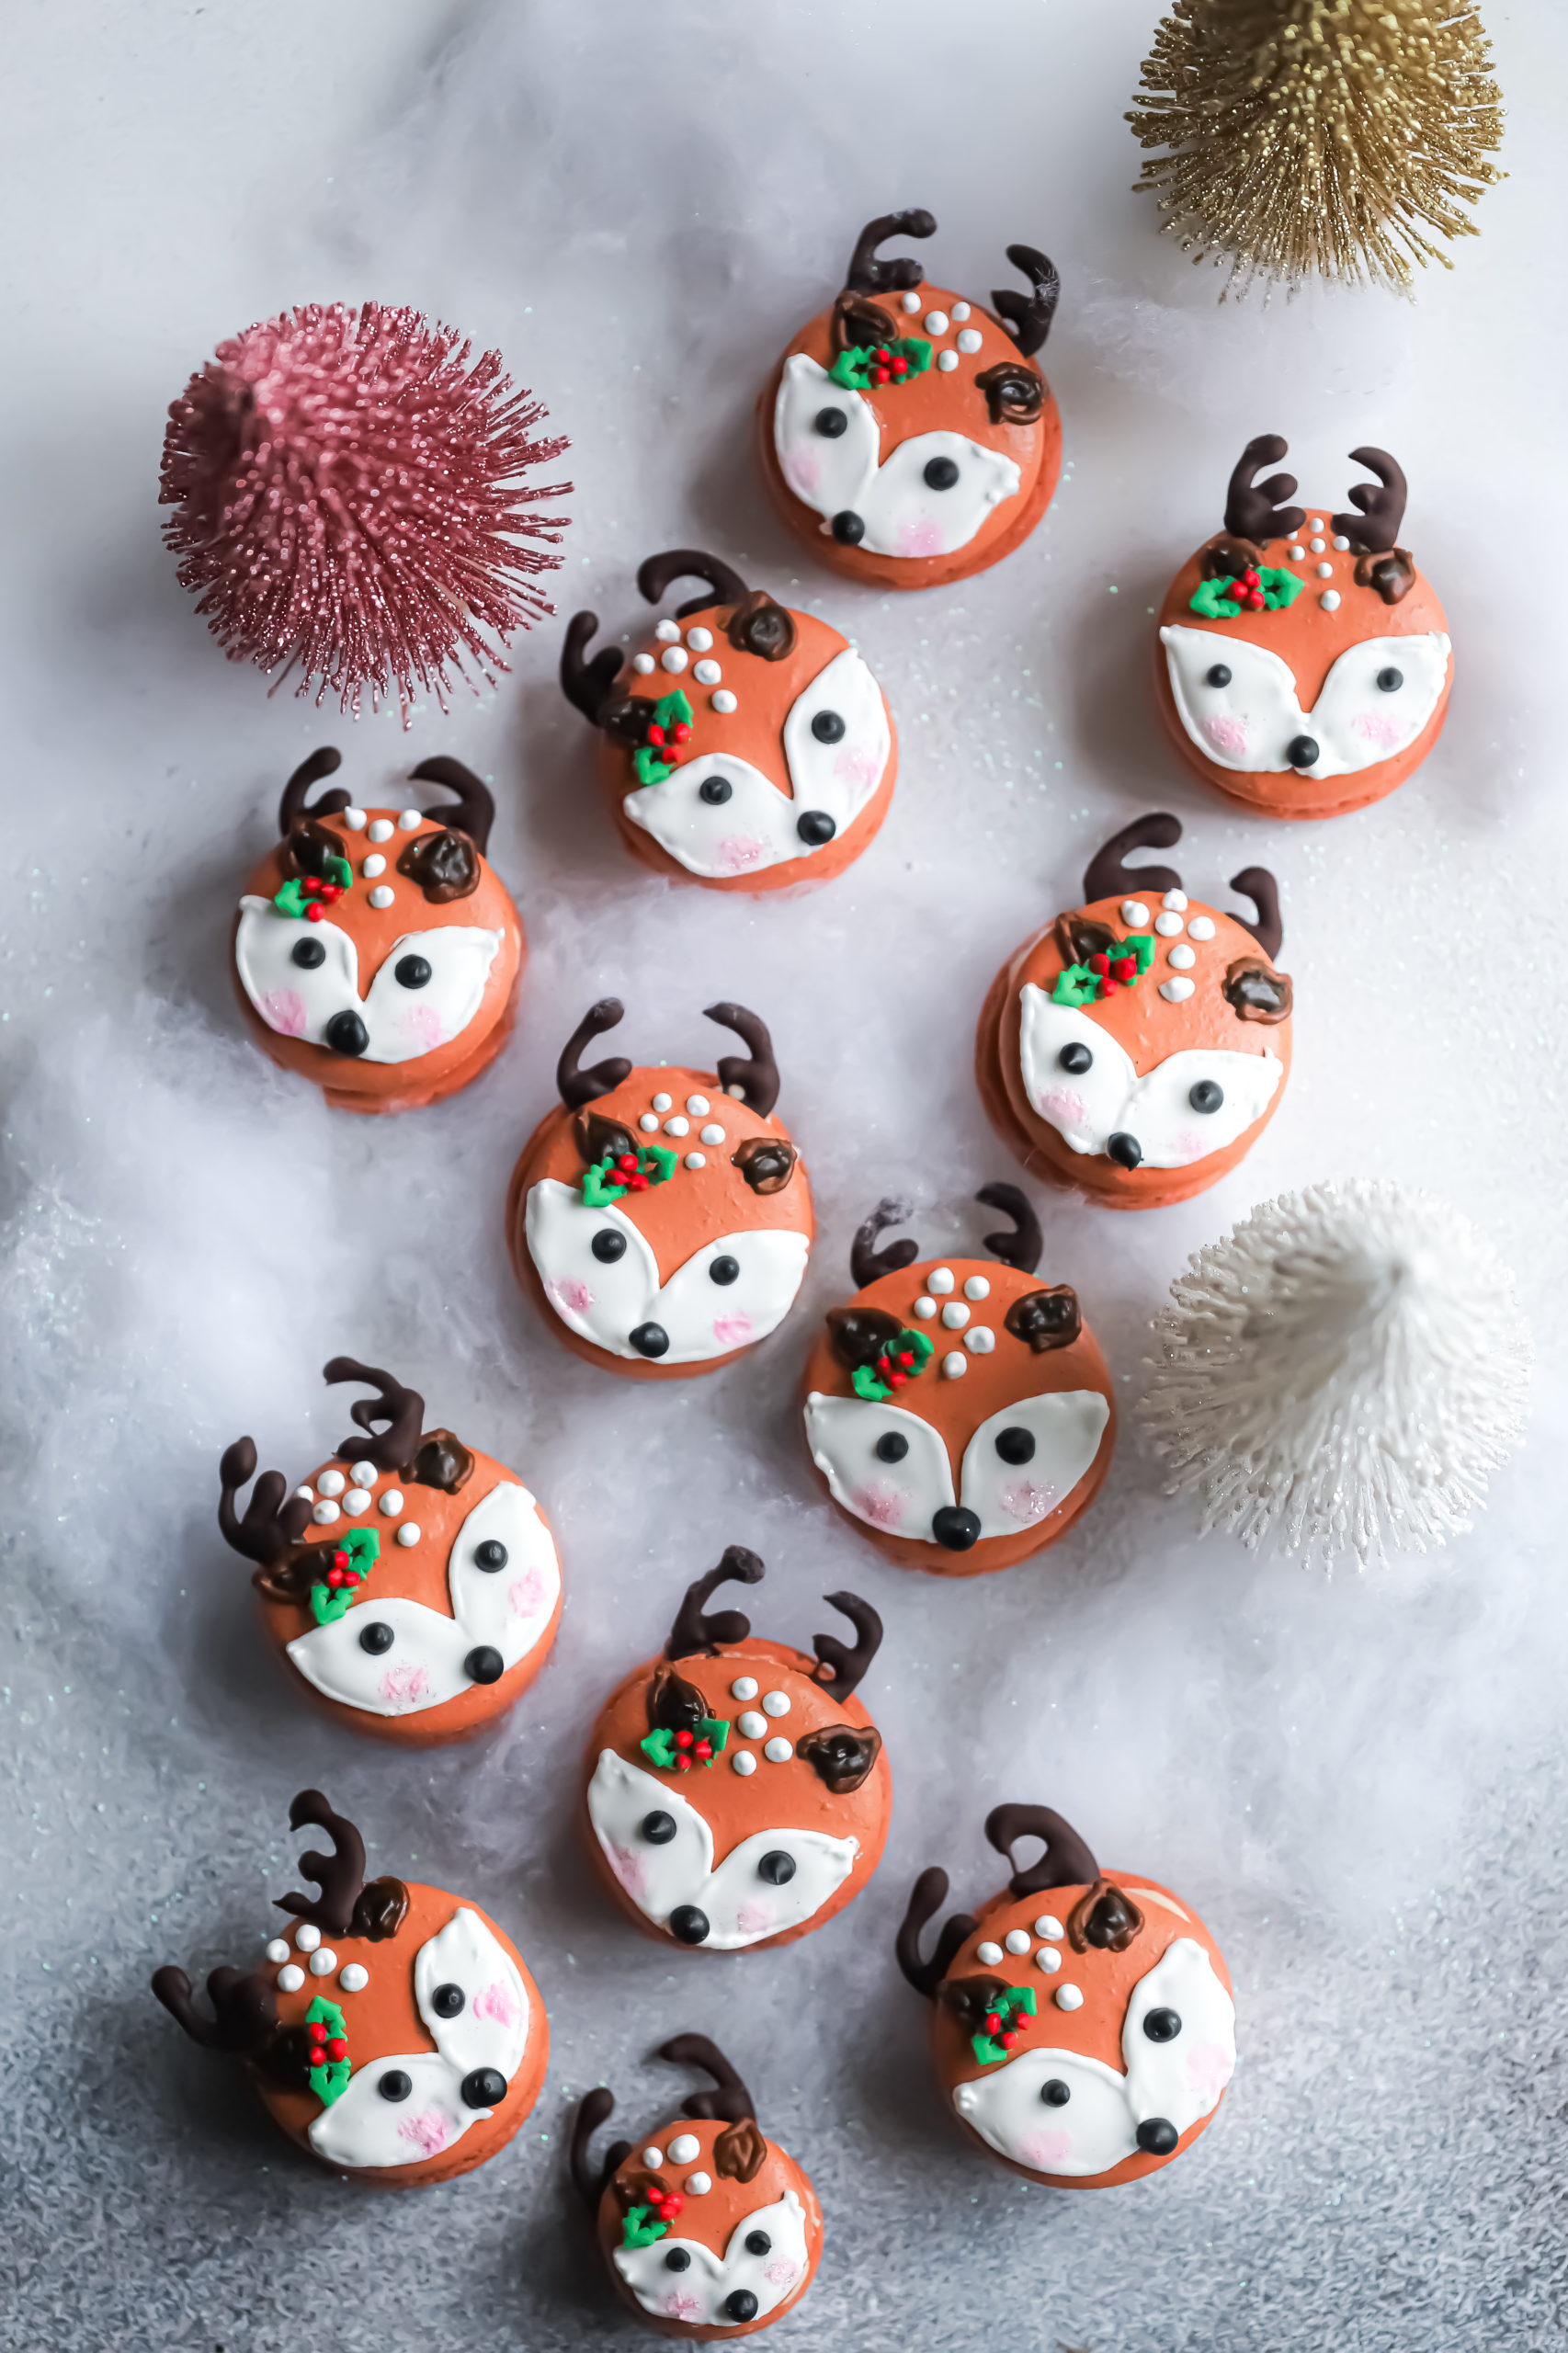 Sweet Treat #4 : Woodland Deer Macarons with Spiced Amaretto Salted Caramel